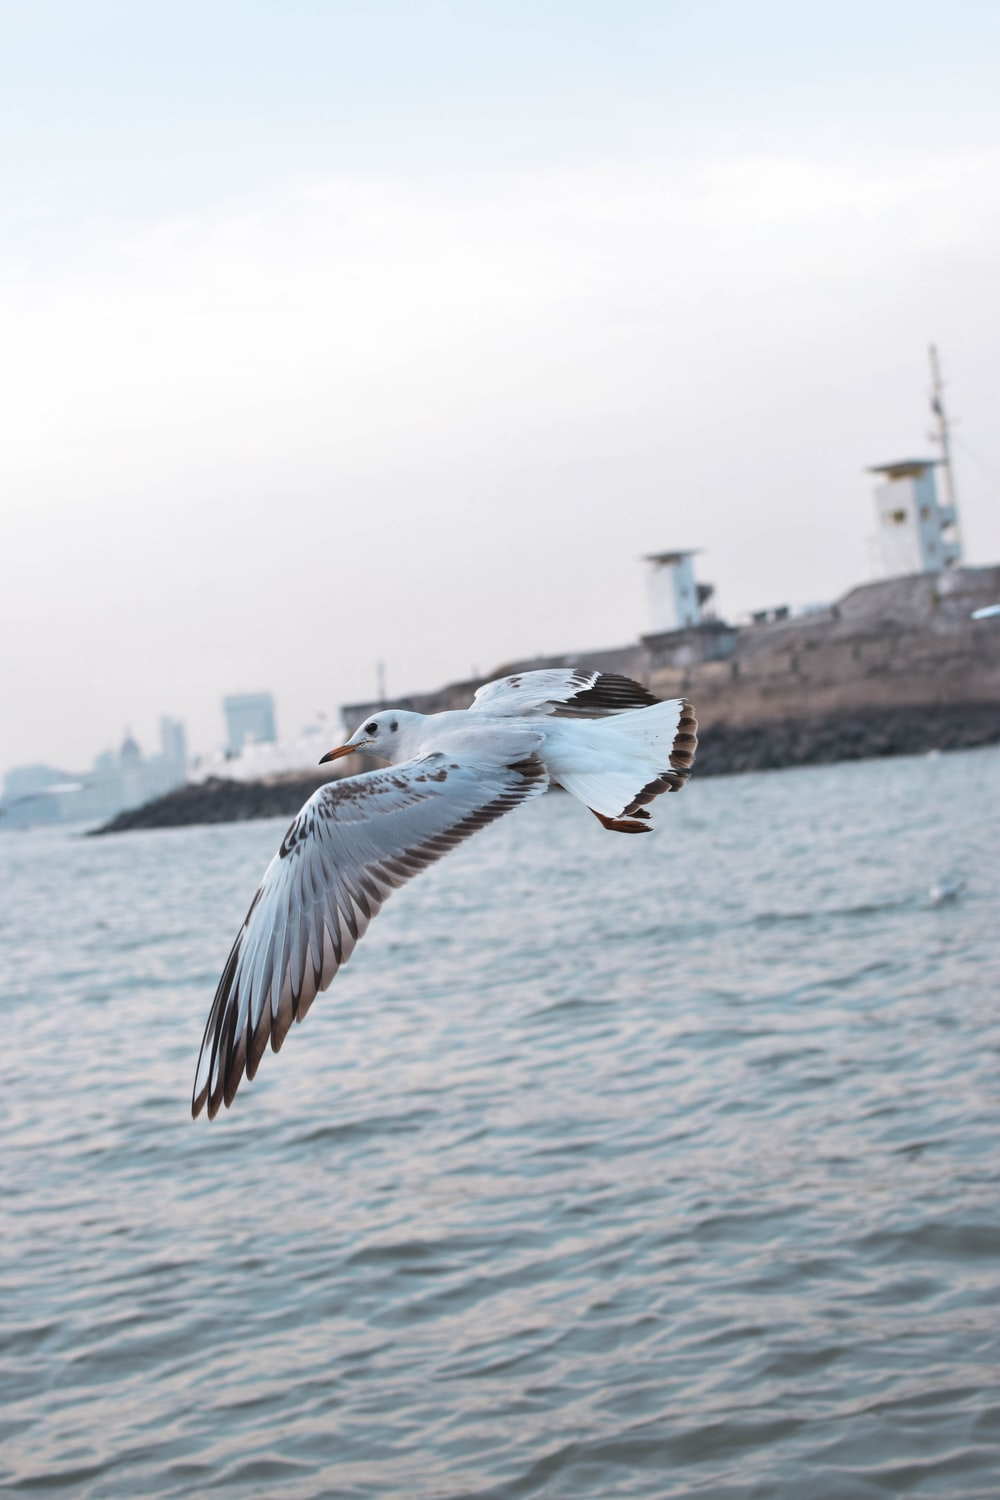 bird on mid air above sea water during daytime